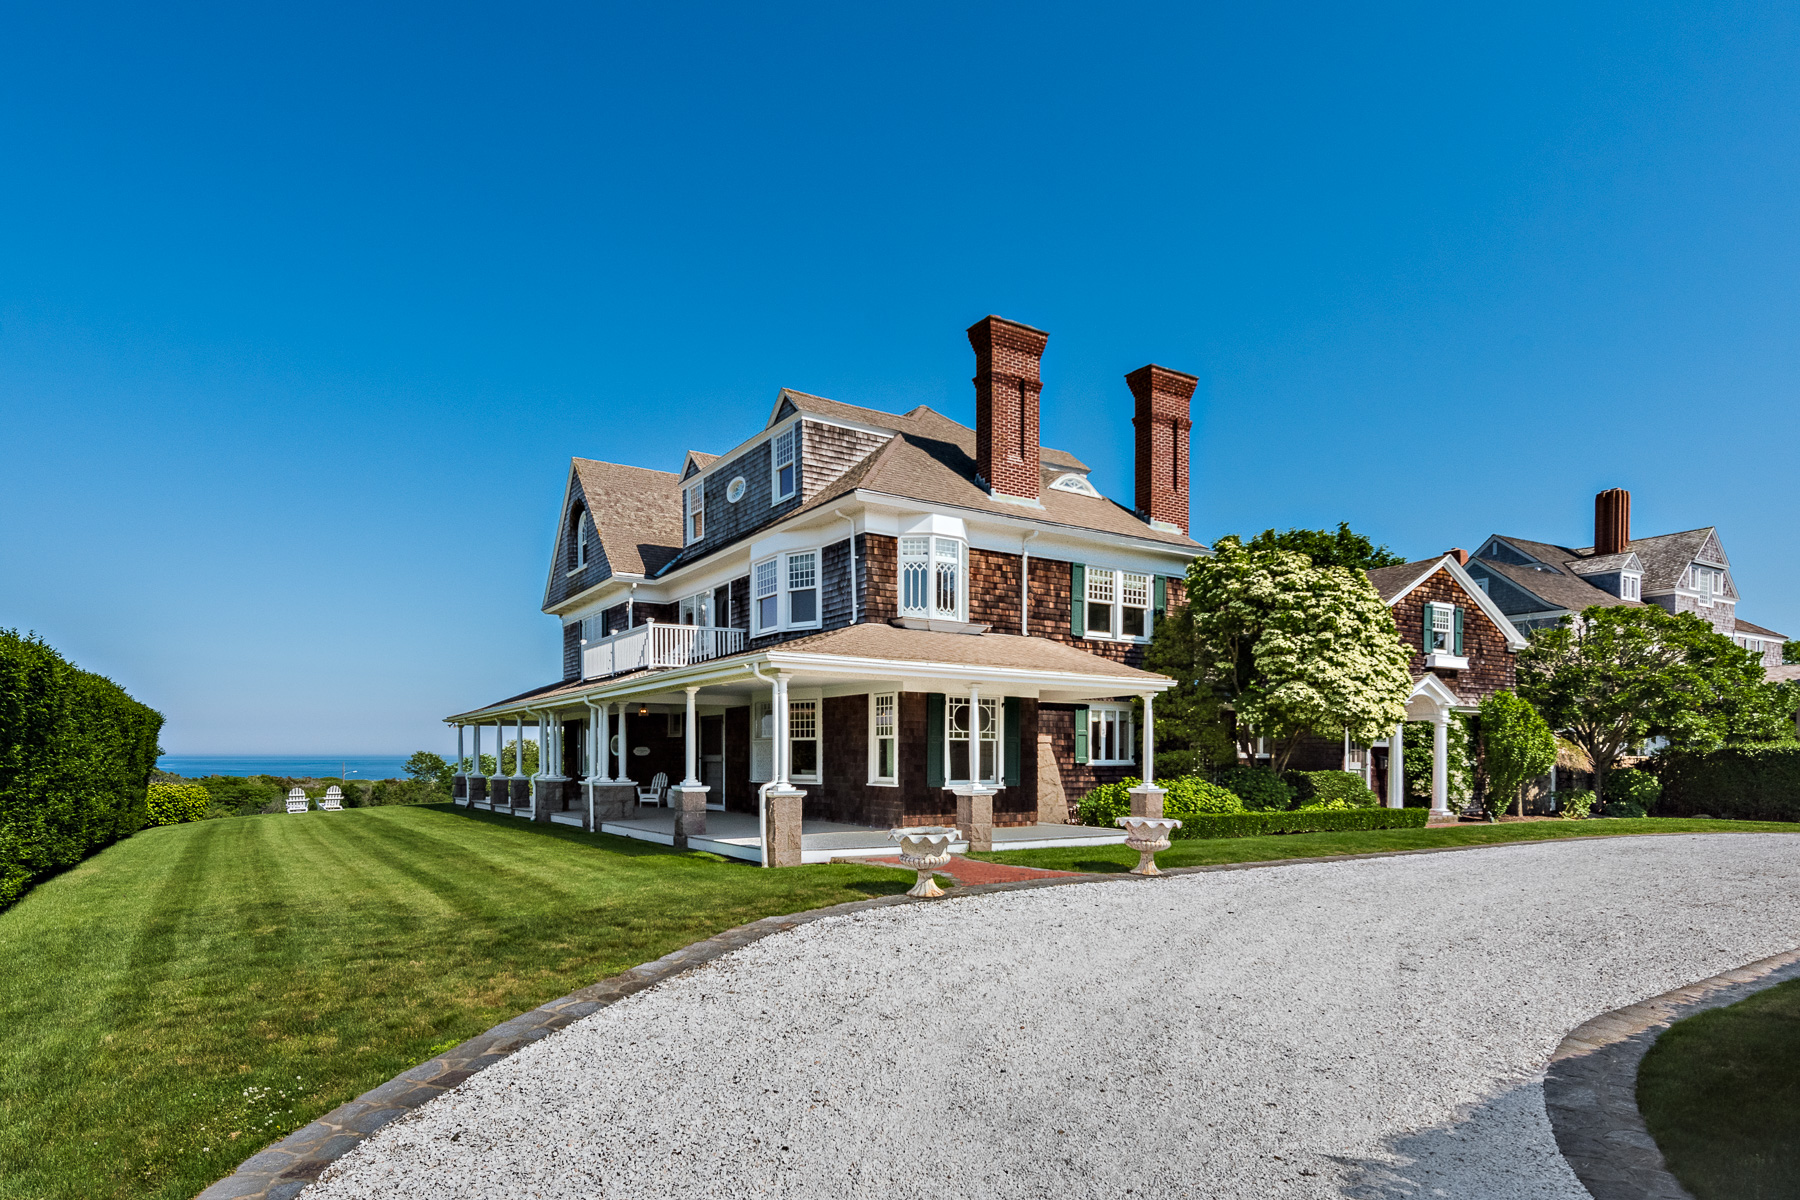 This eight-bedroom home sold recently for $7.4 million./MOTT & CHACE SOTHEBY'S INTERNATIONAL REALTY.